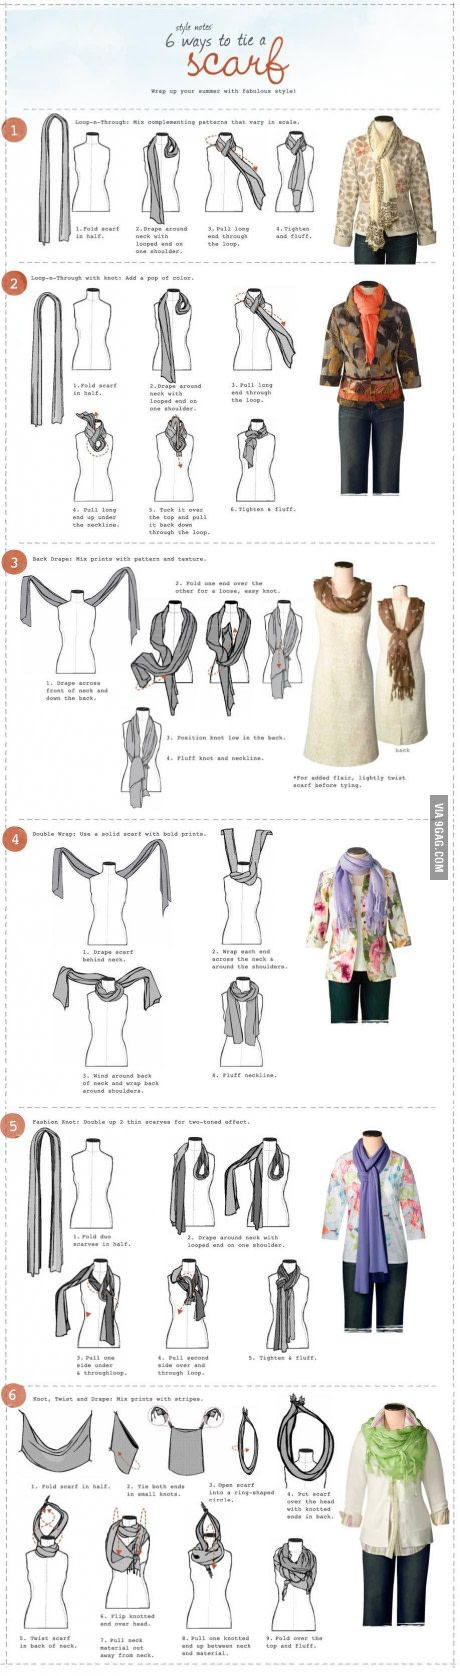 How to tie a scarf Wow